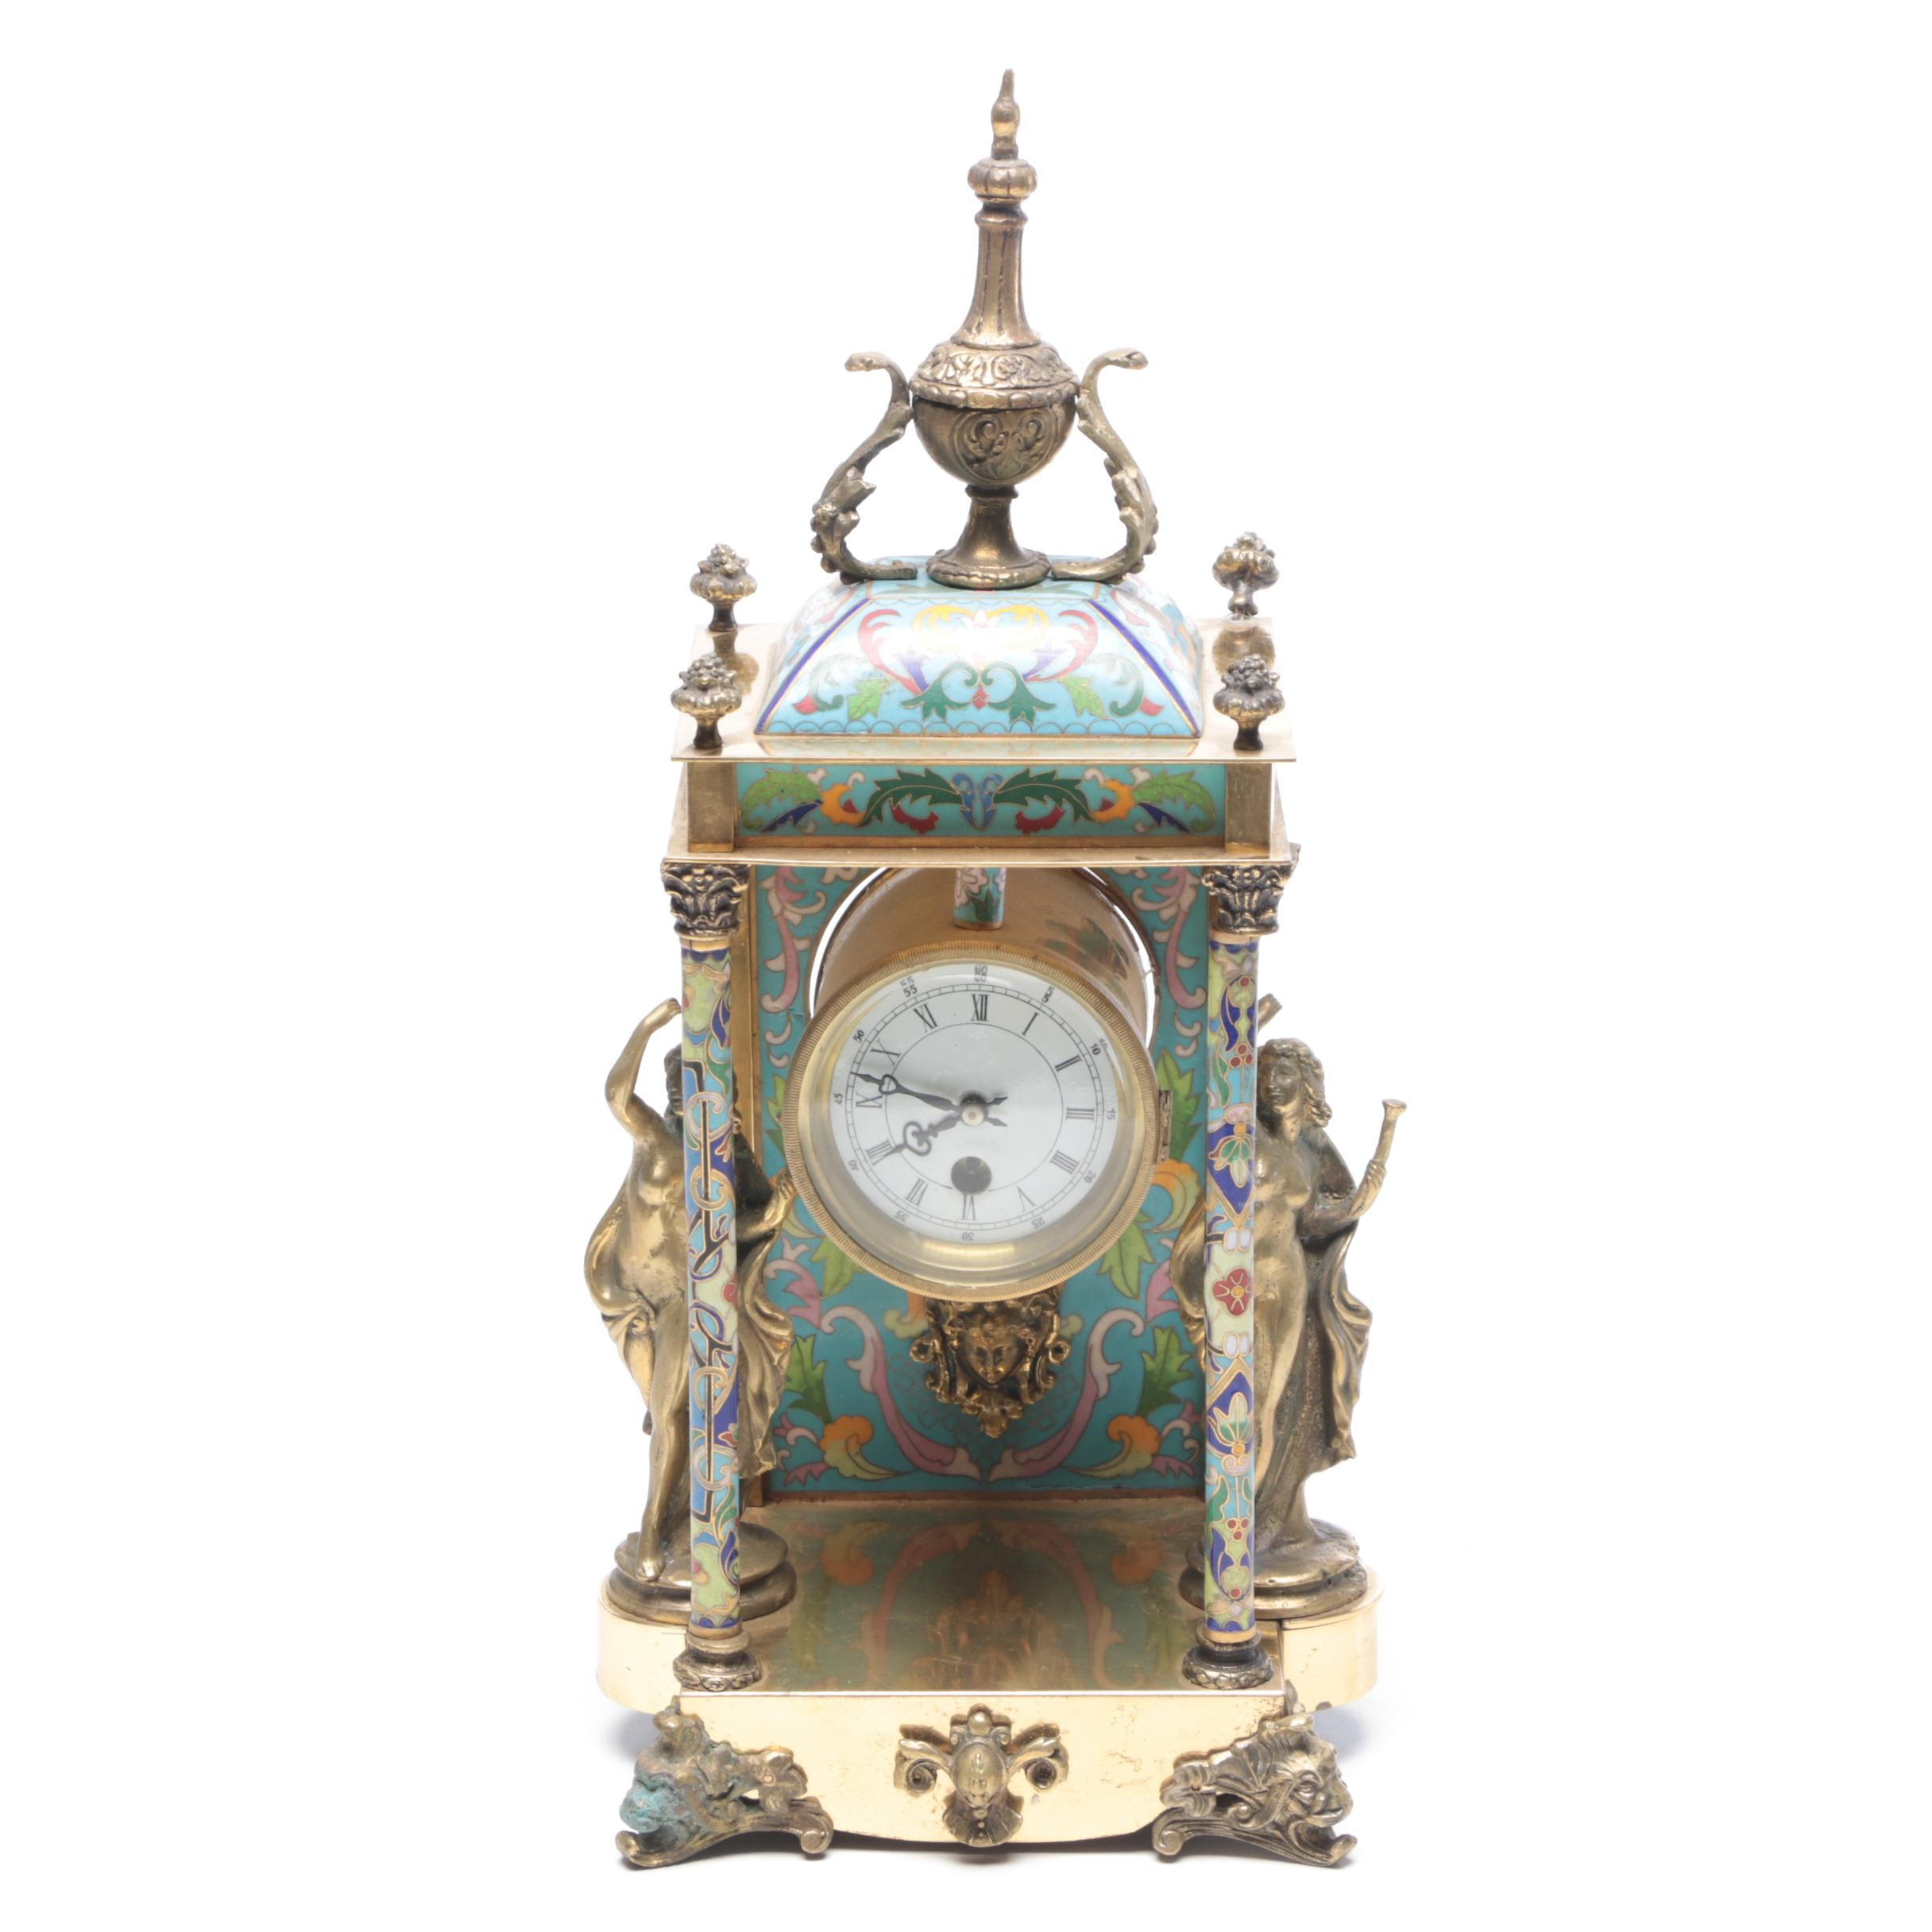 Brass and Cloisonné Neoclassical Mantel Clock